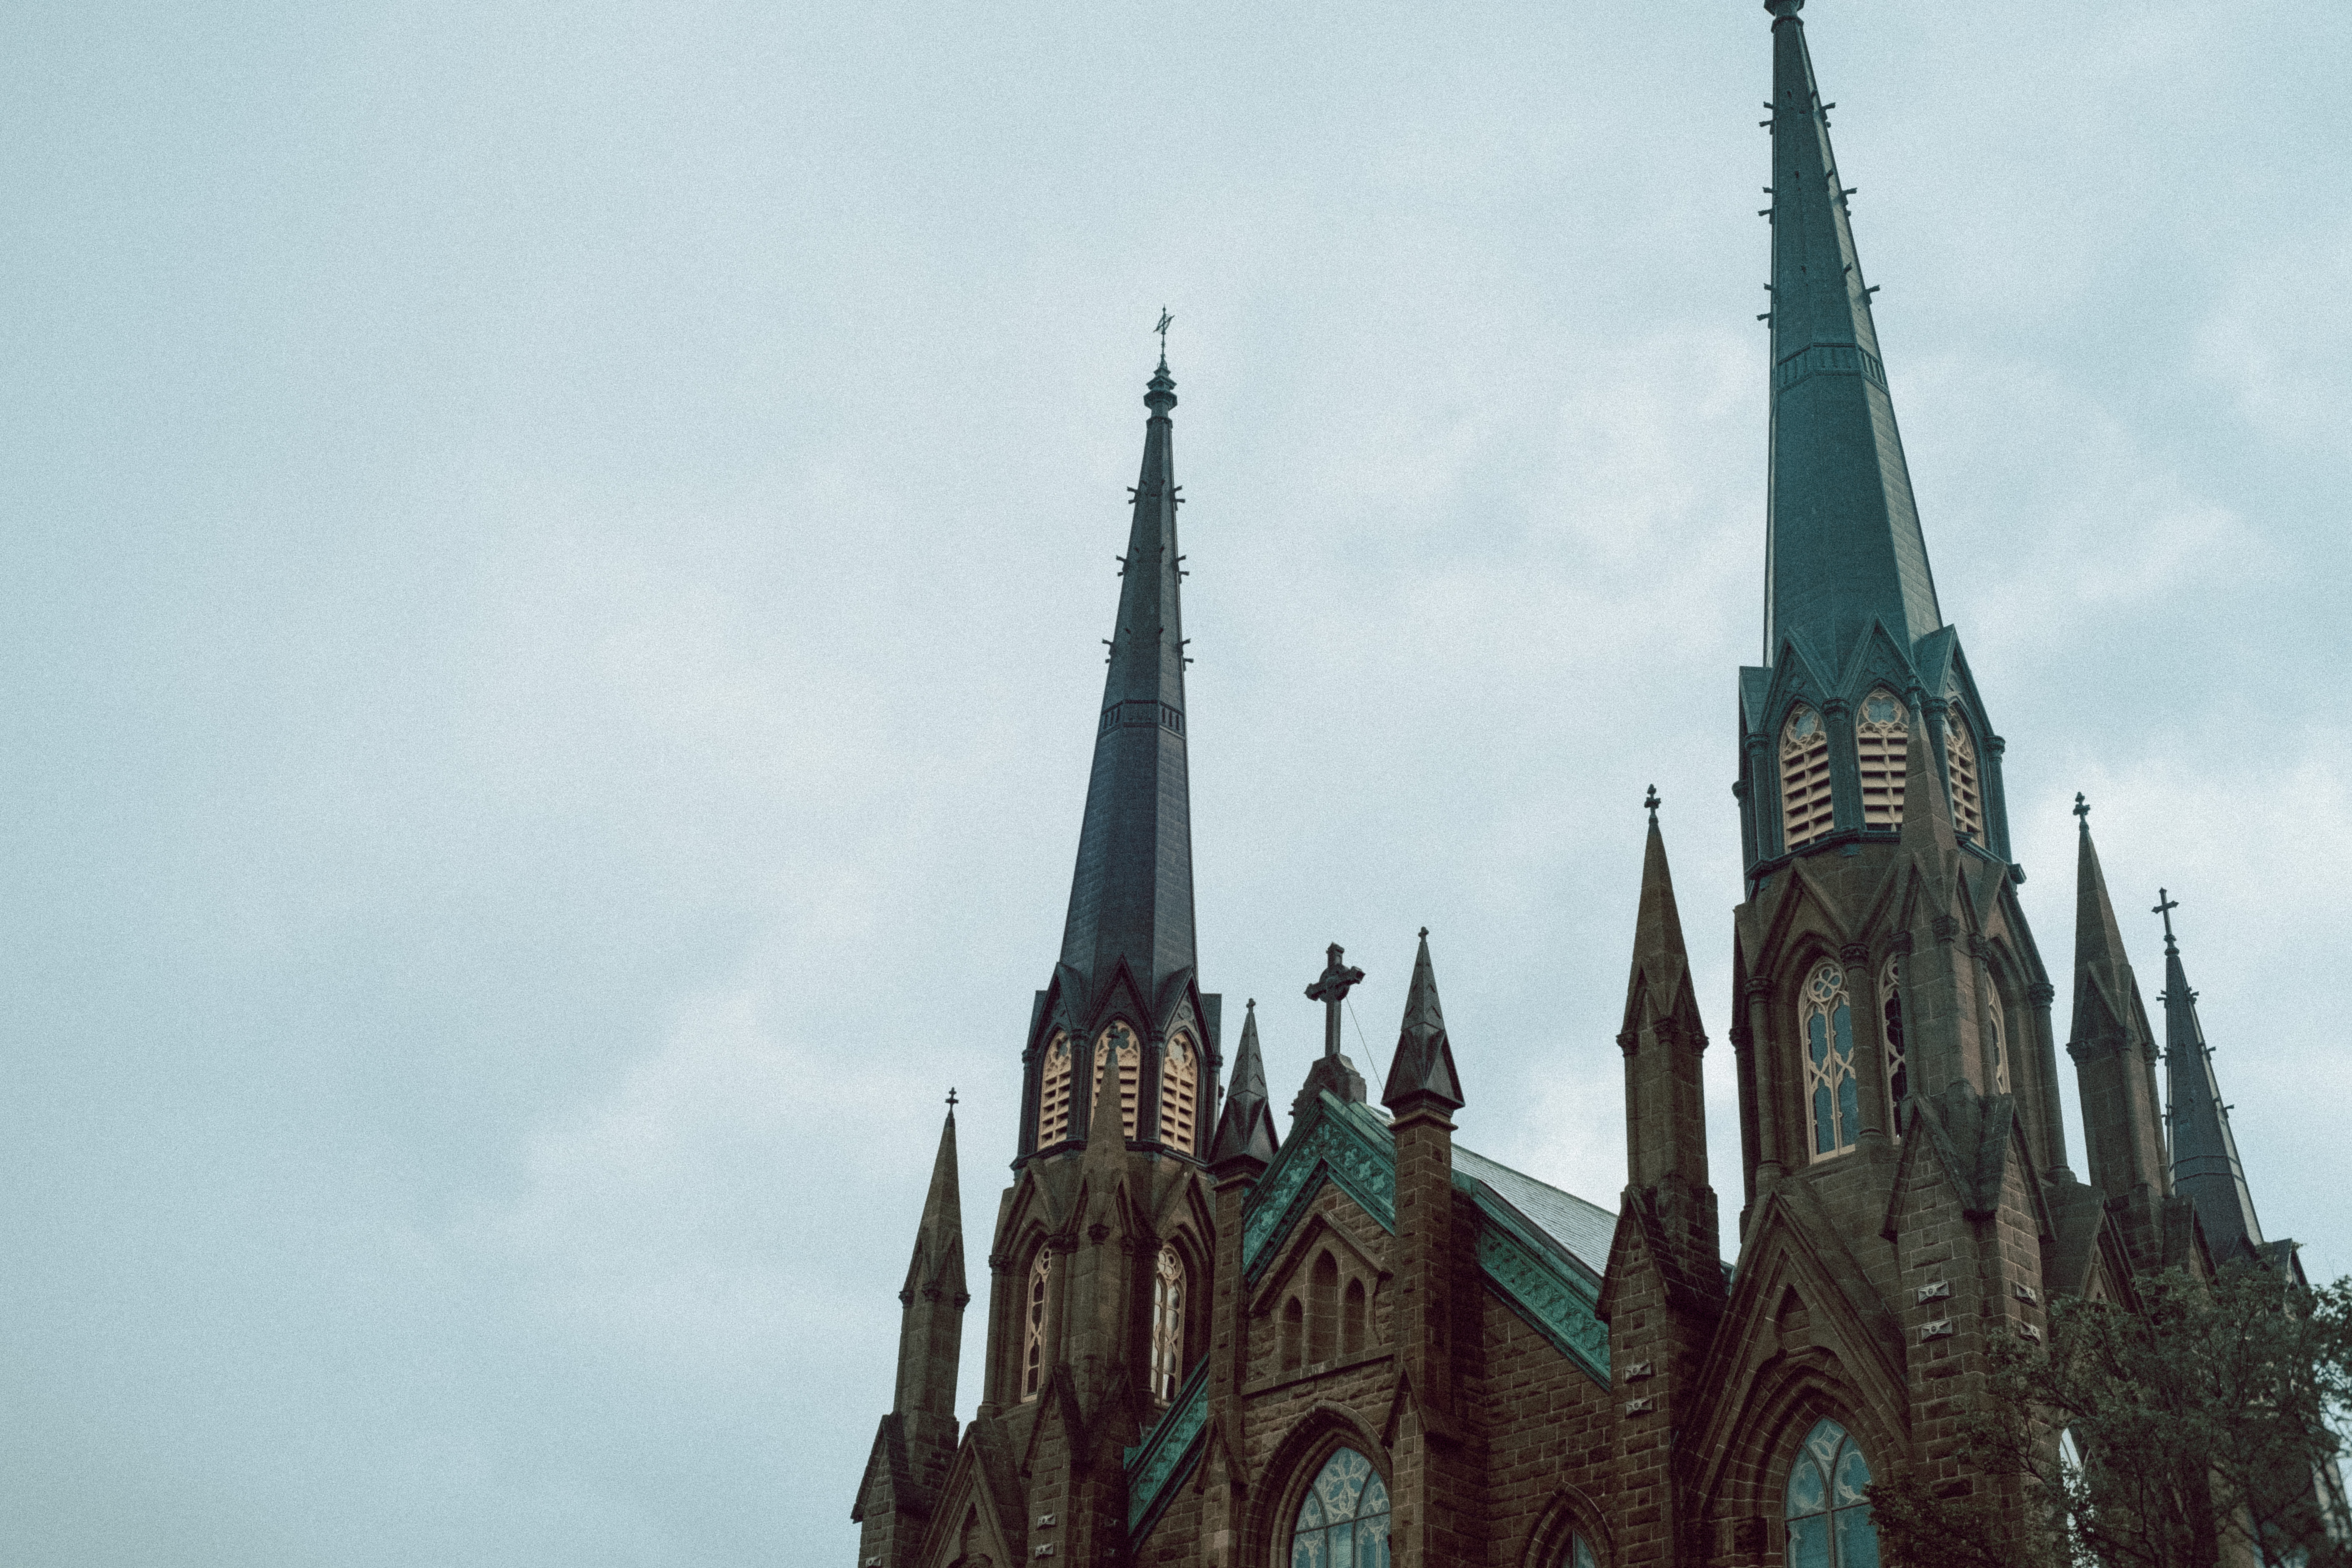 PEI Cathedral Steeples tight